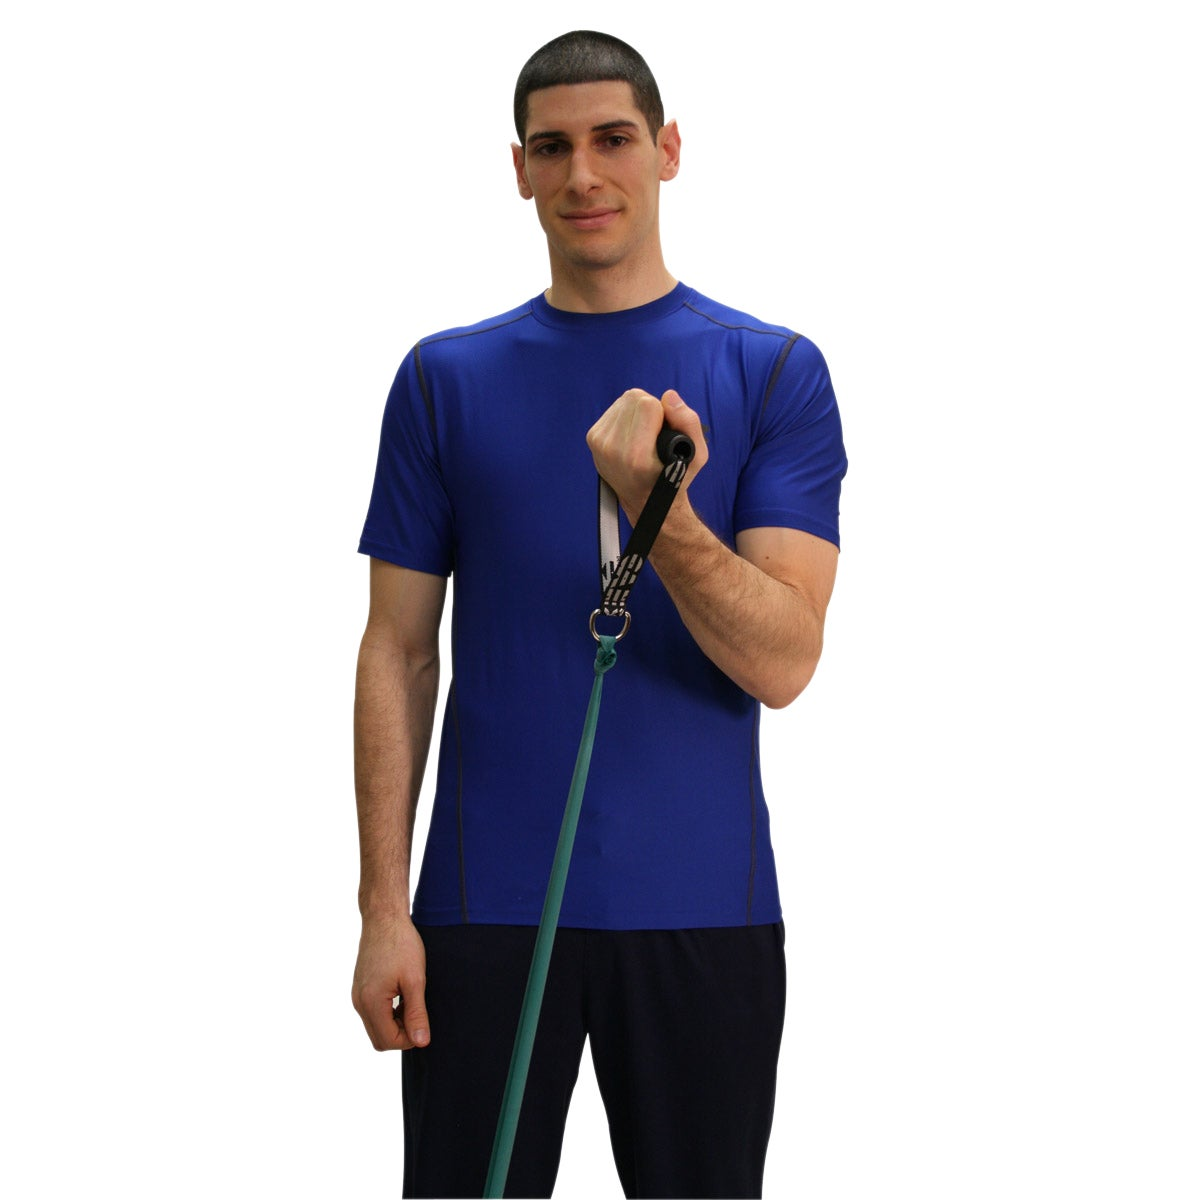 Fabrication Enterprises Cando Exercise Band handle with D...